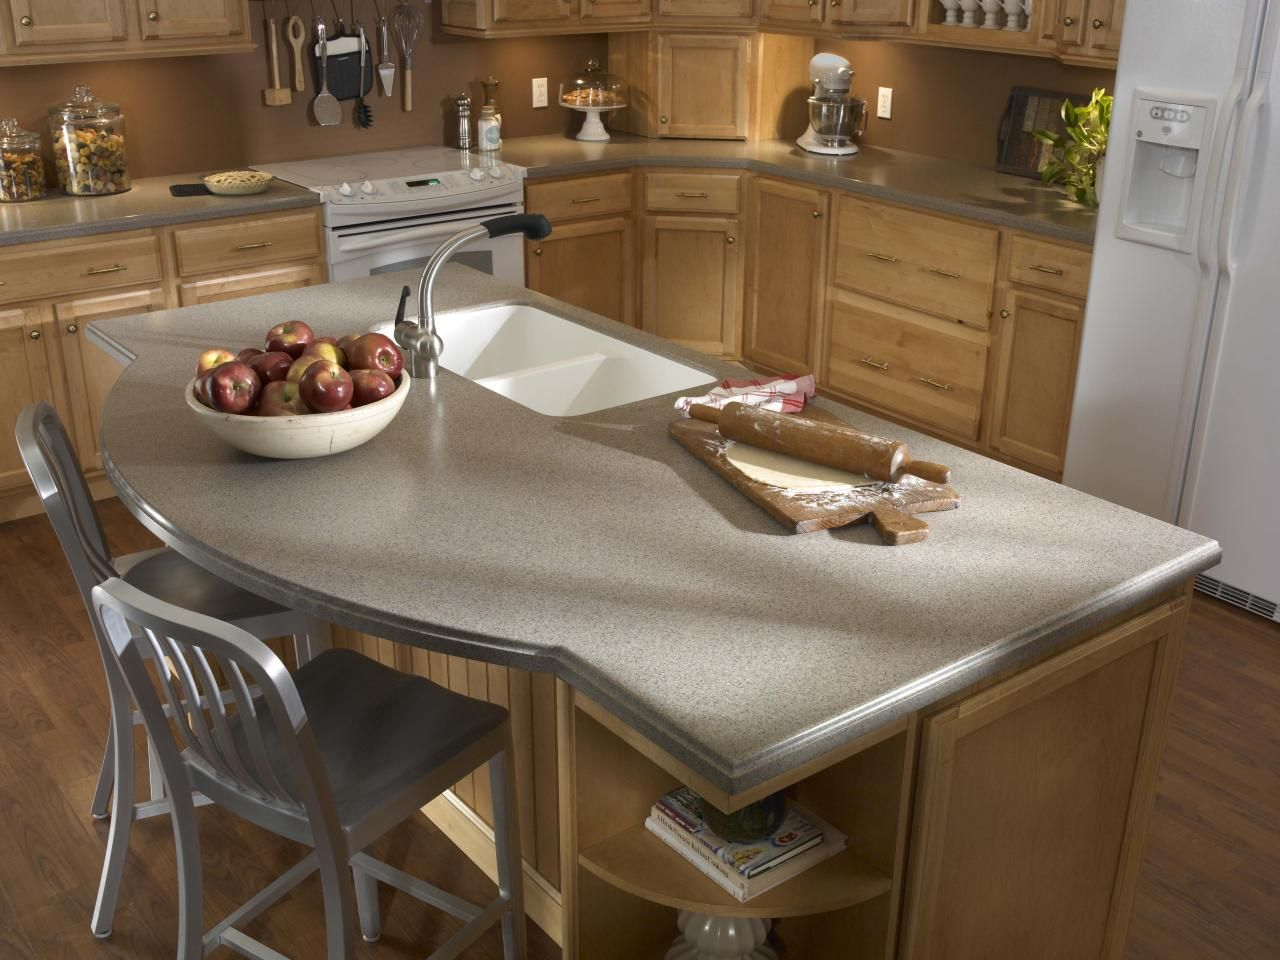 Solid-Surface Kitchen Countertop